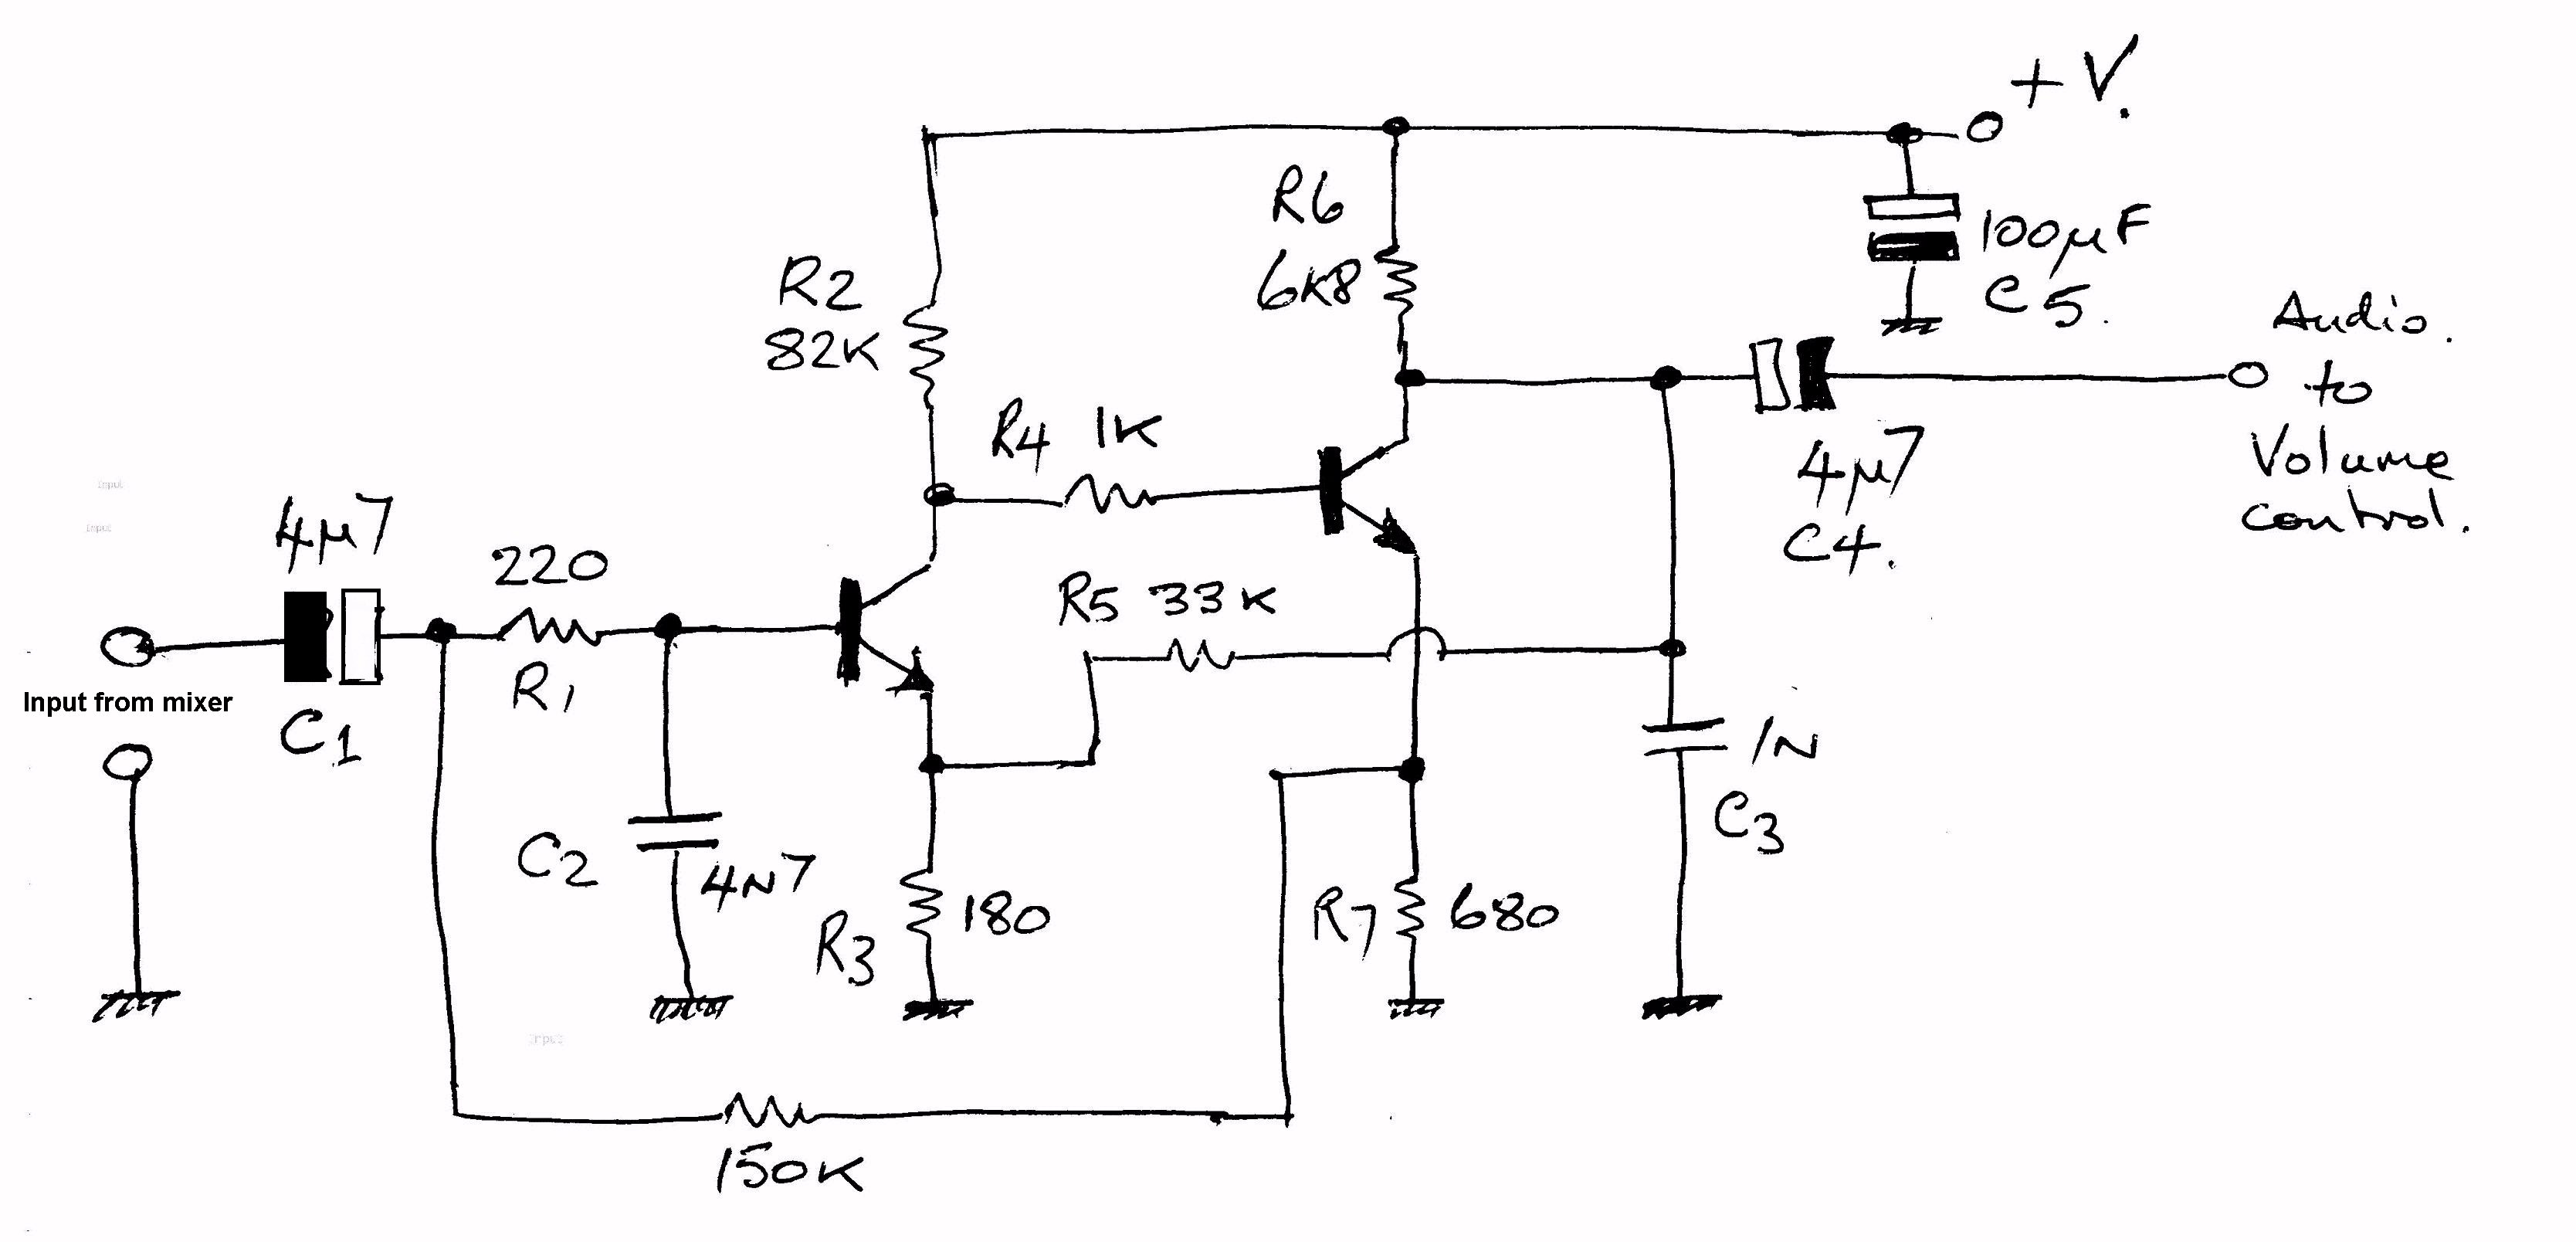 Rightclick And Save As To Save This Full Size Circuit To Your Pc